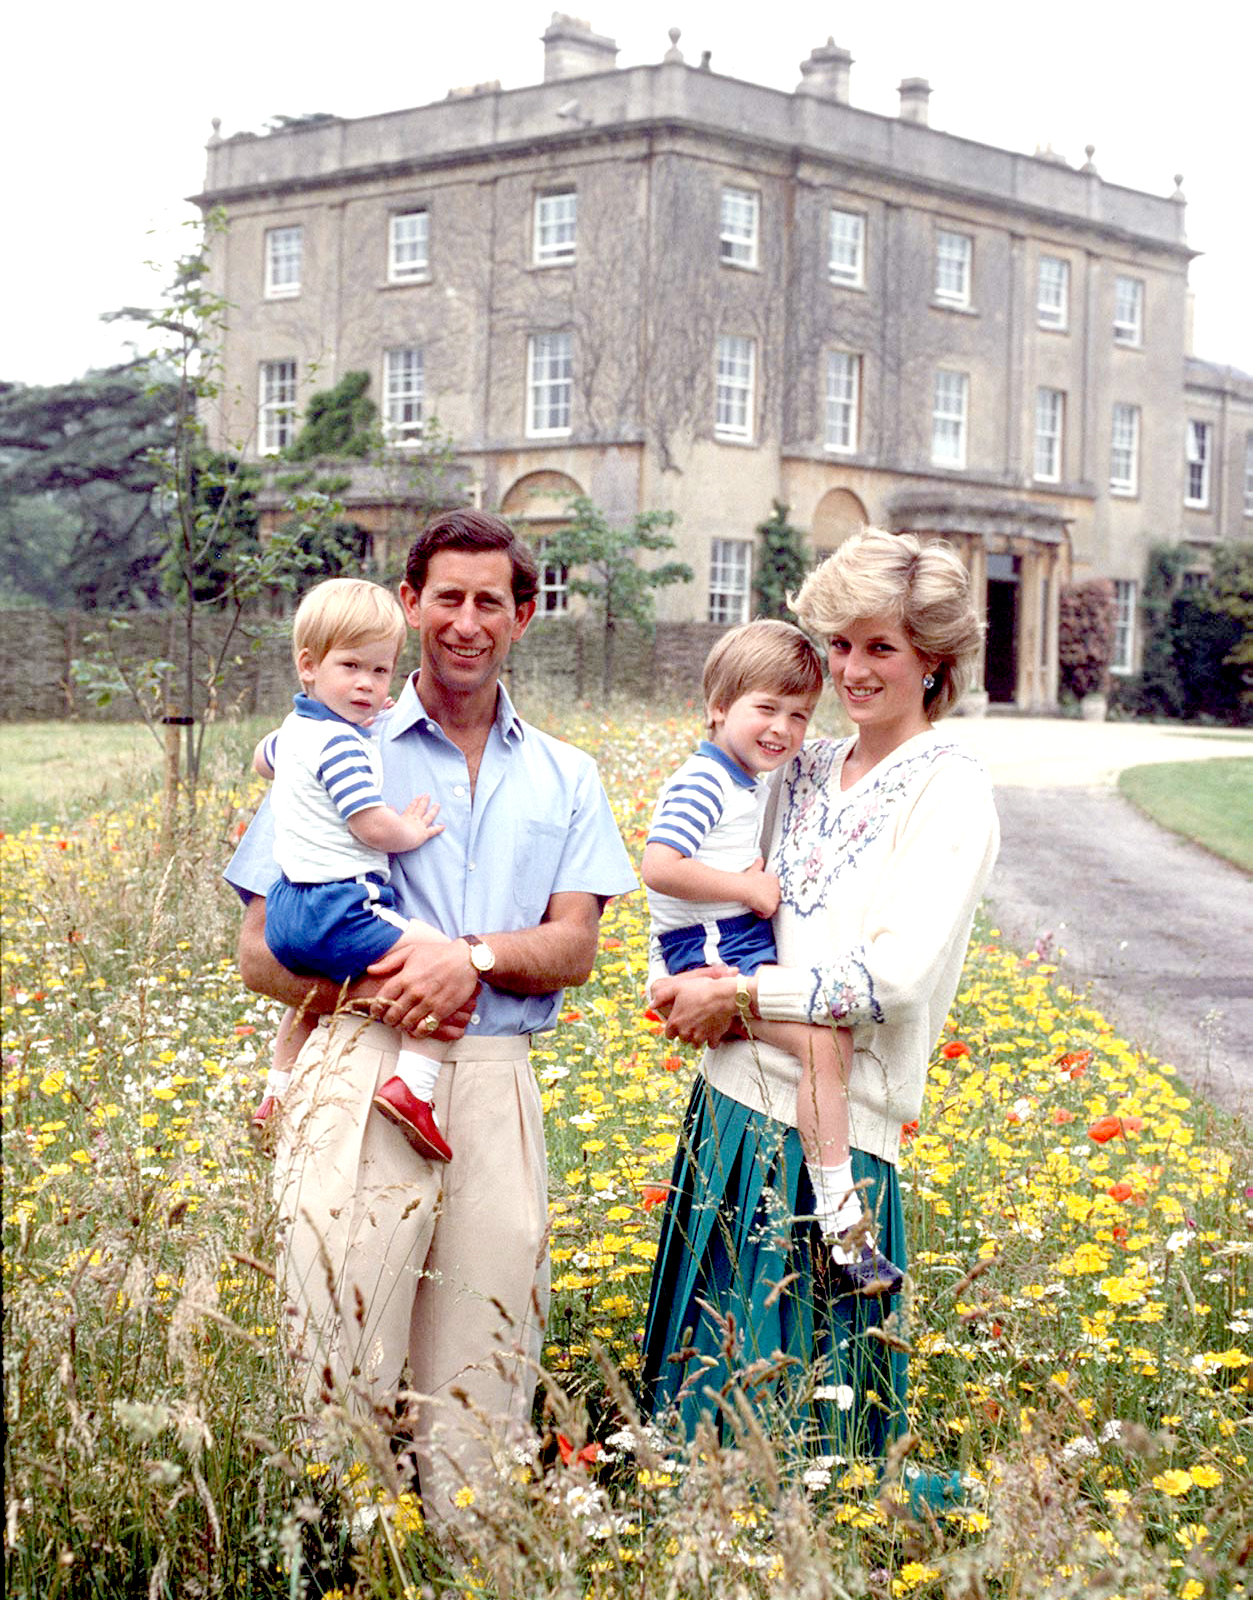 The Prince And Princess Of Wales With Prince William & Prince Harry